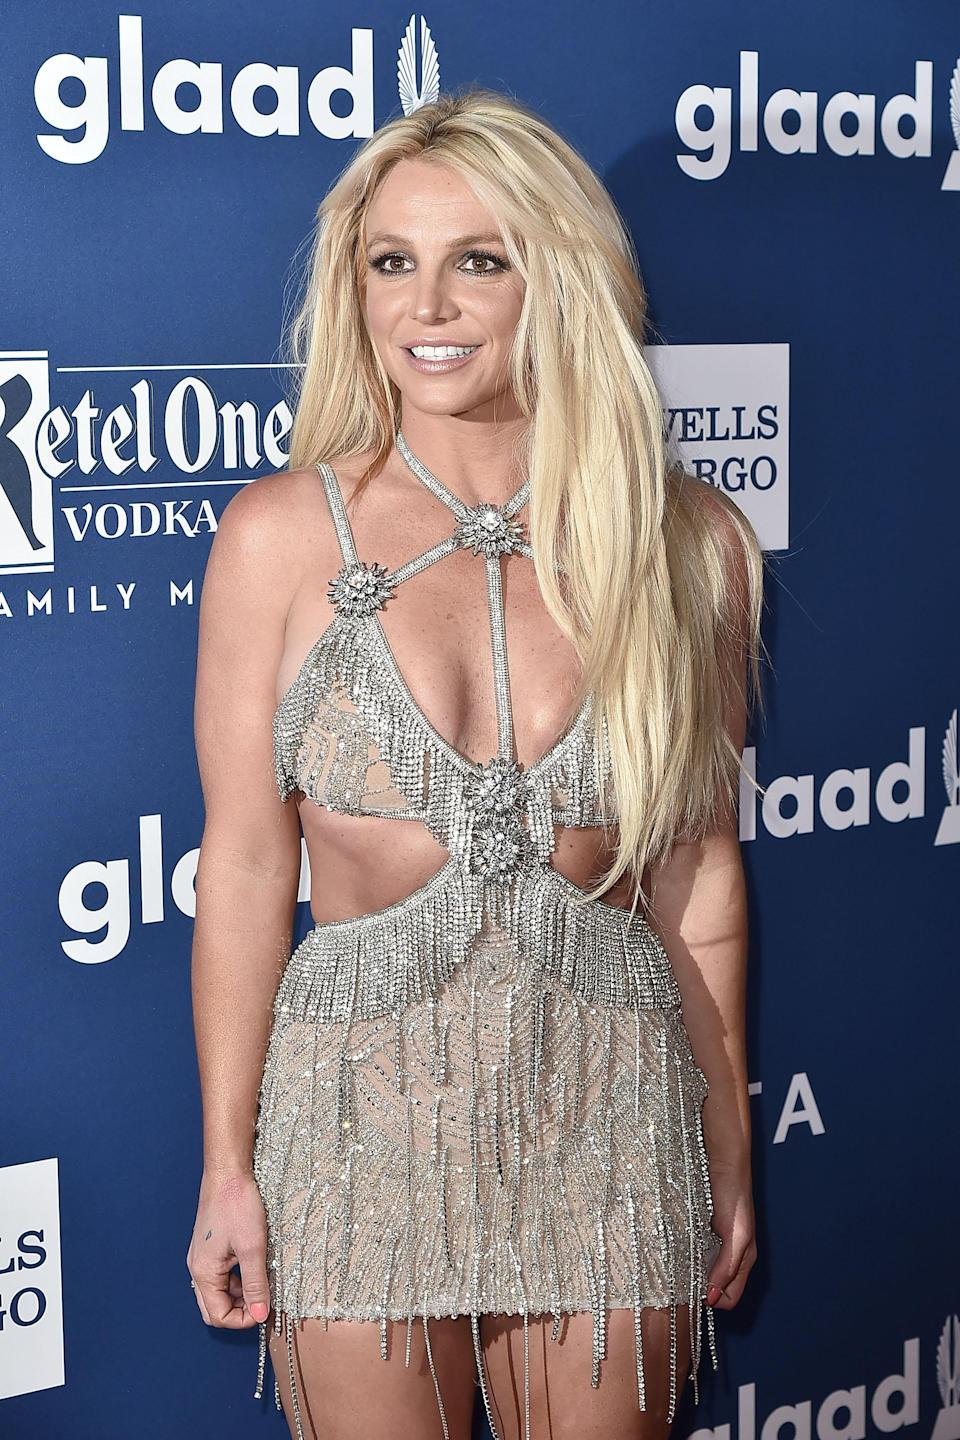 "<p>Back in 2014, singer Britney Spears revealed that she regularly has lip injections. ""A doctor I see, (Beverly Hills plastic surgeon) Dr.Kanodia, does fun stuff to me sometimes – I've had lip injections before,"" she told <a href=""https://www.instyle.com/news/see-britney-spears-cover-instyles-january-issue"" rel=""nofollow noopener"" target=""_blank"" data-ylk=""slk:InStyle"" class=""link rapid-noclick-resp""><em>InStyle</em></a>. <em>[Photo: Getty]</em> </p>"